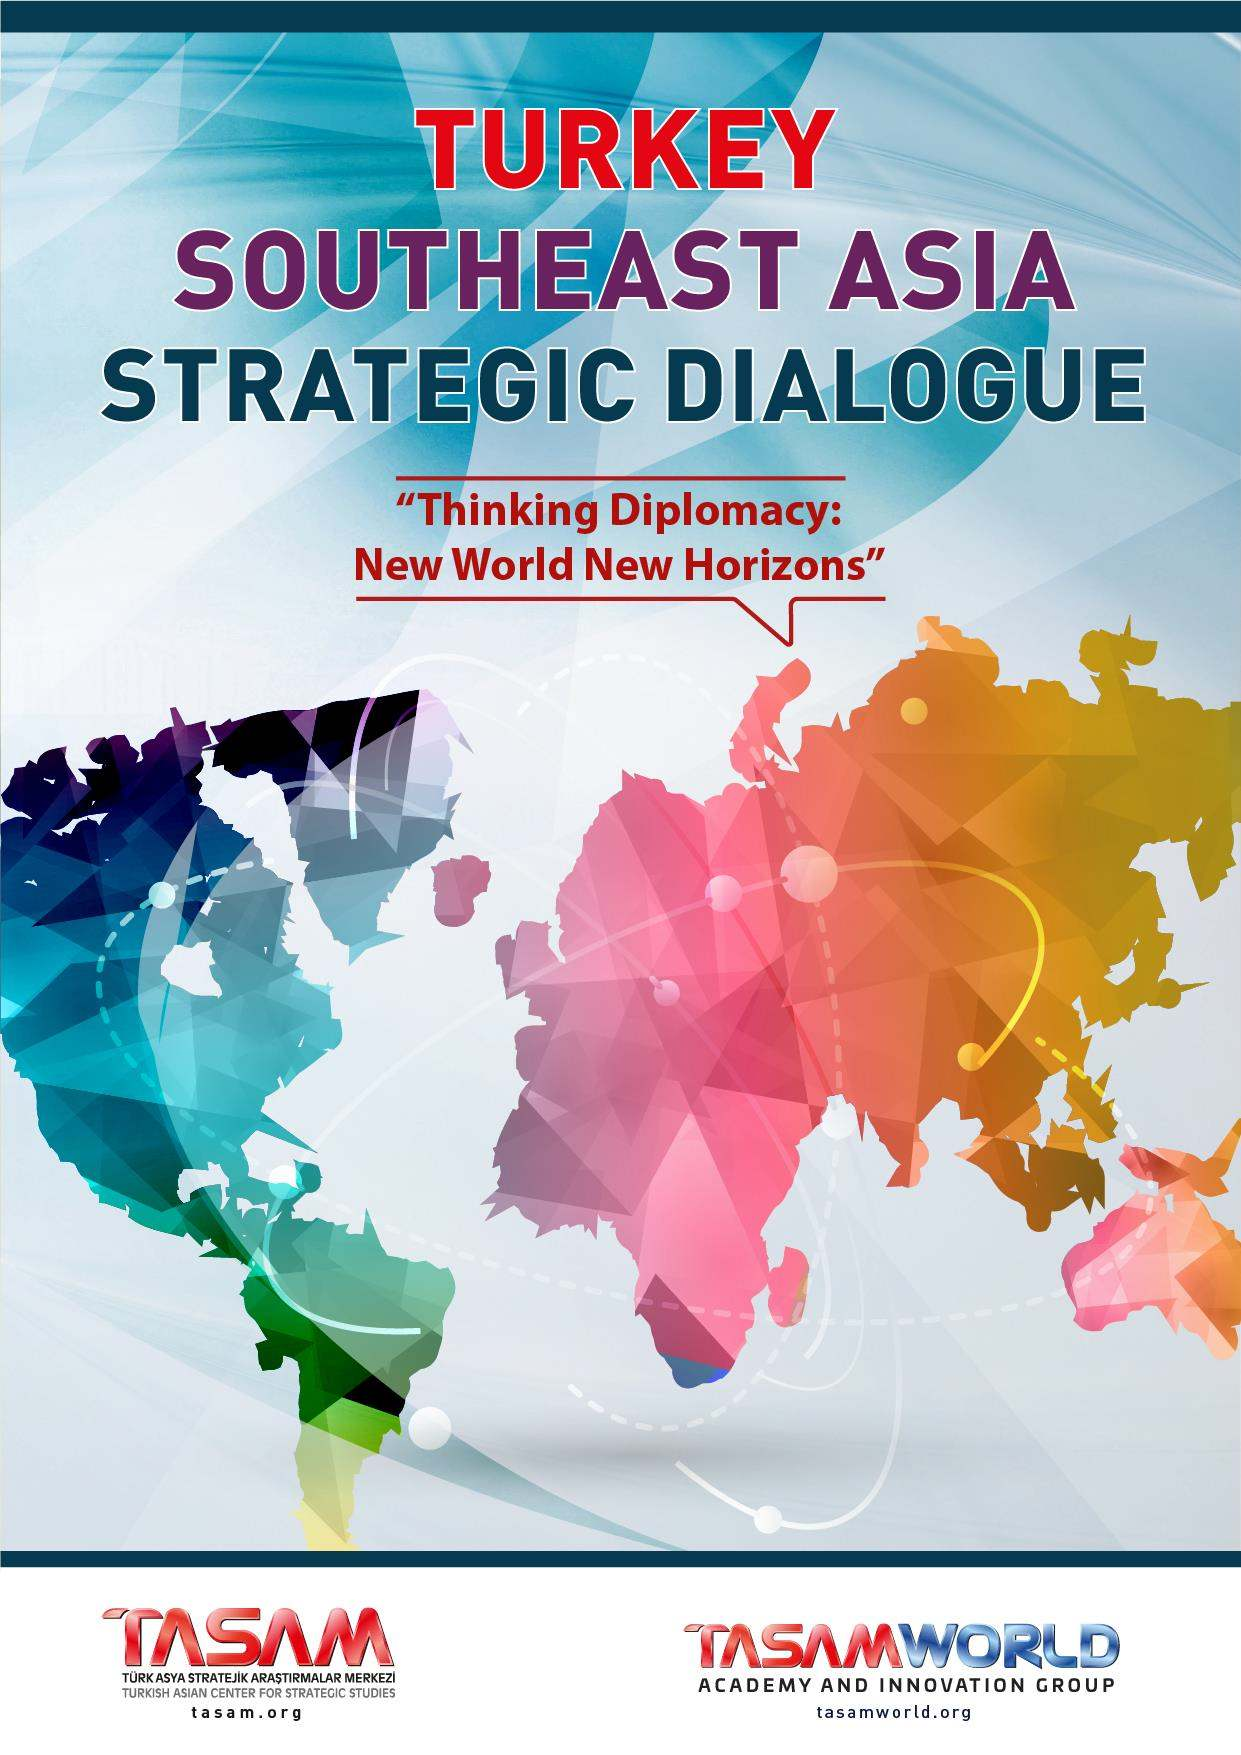 Turkey - Southeast Asia Strategic Dialogue